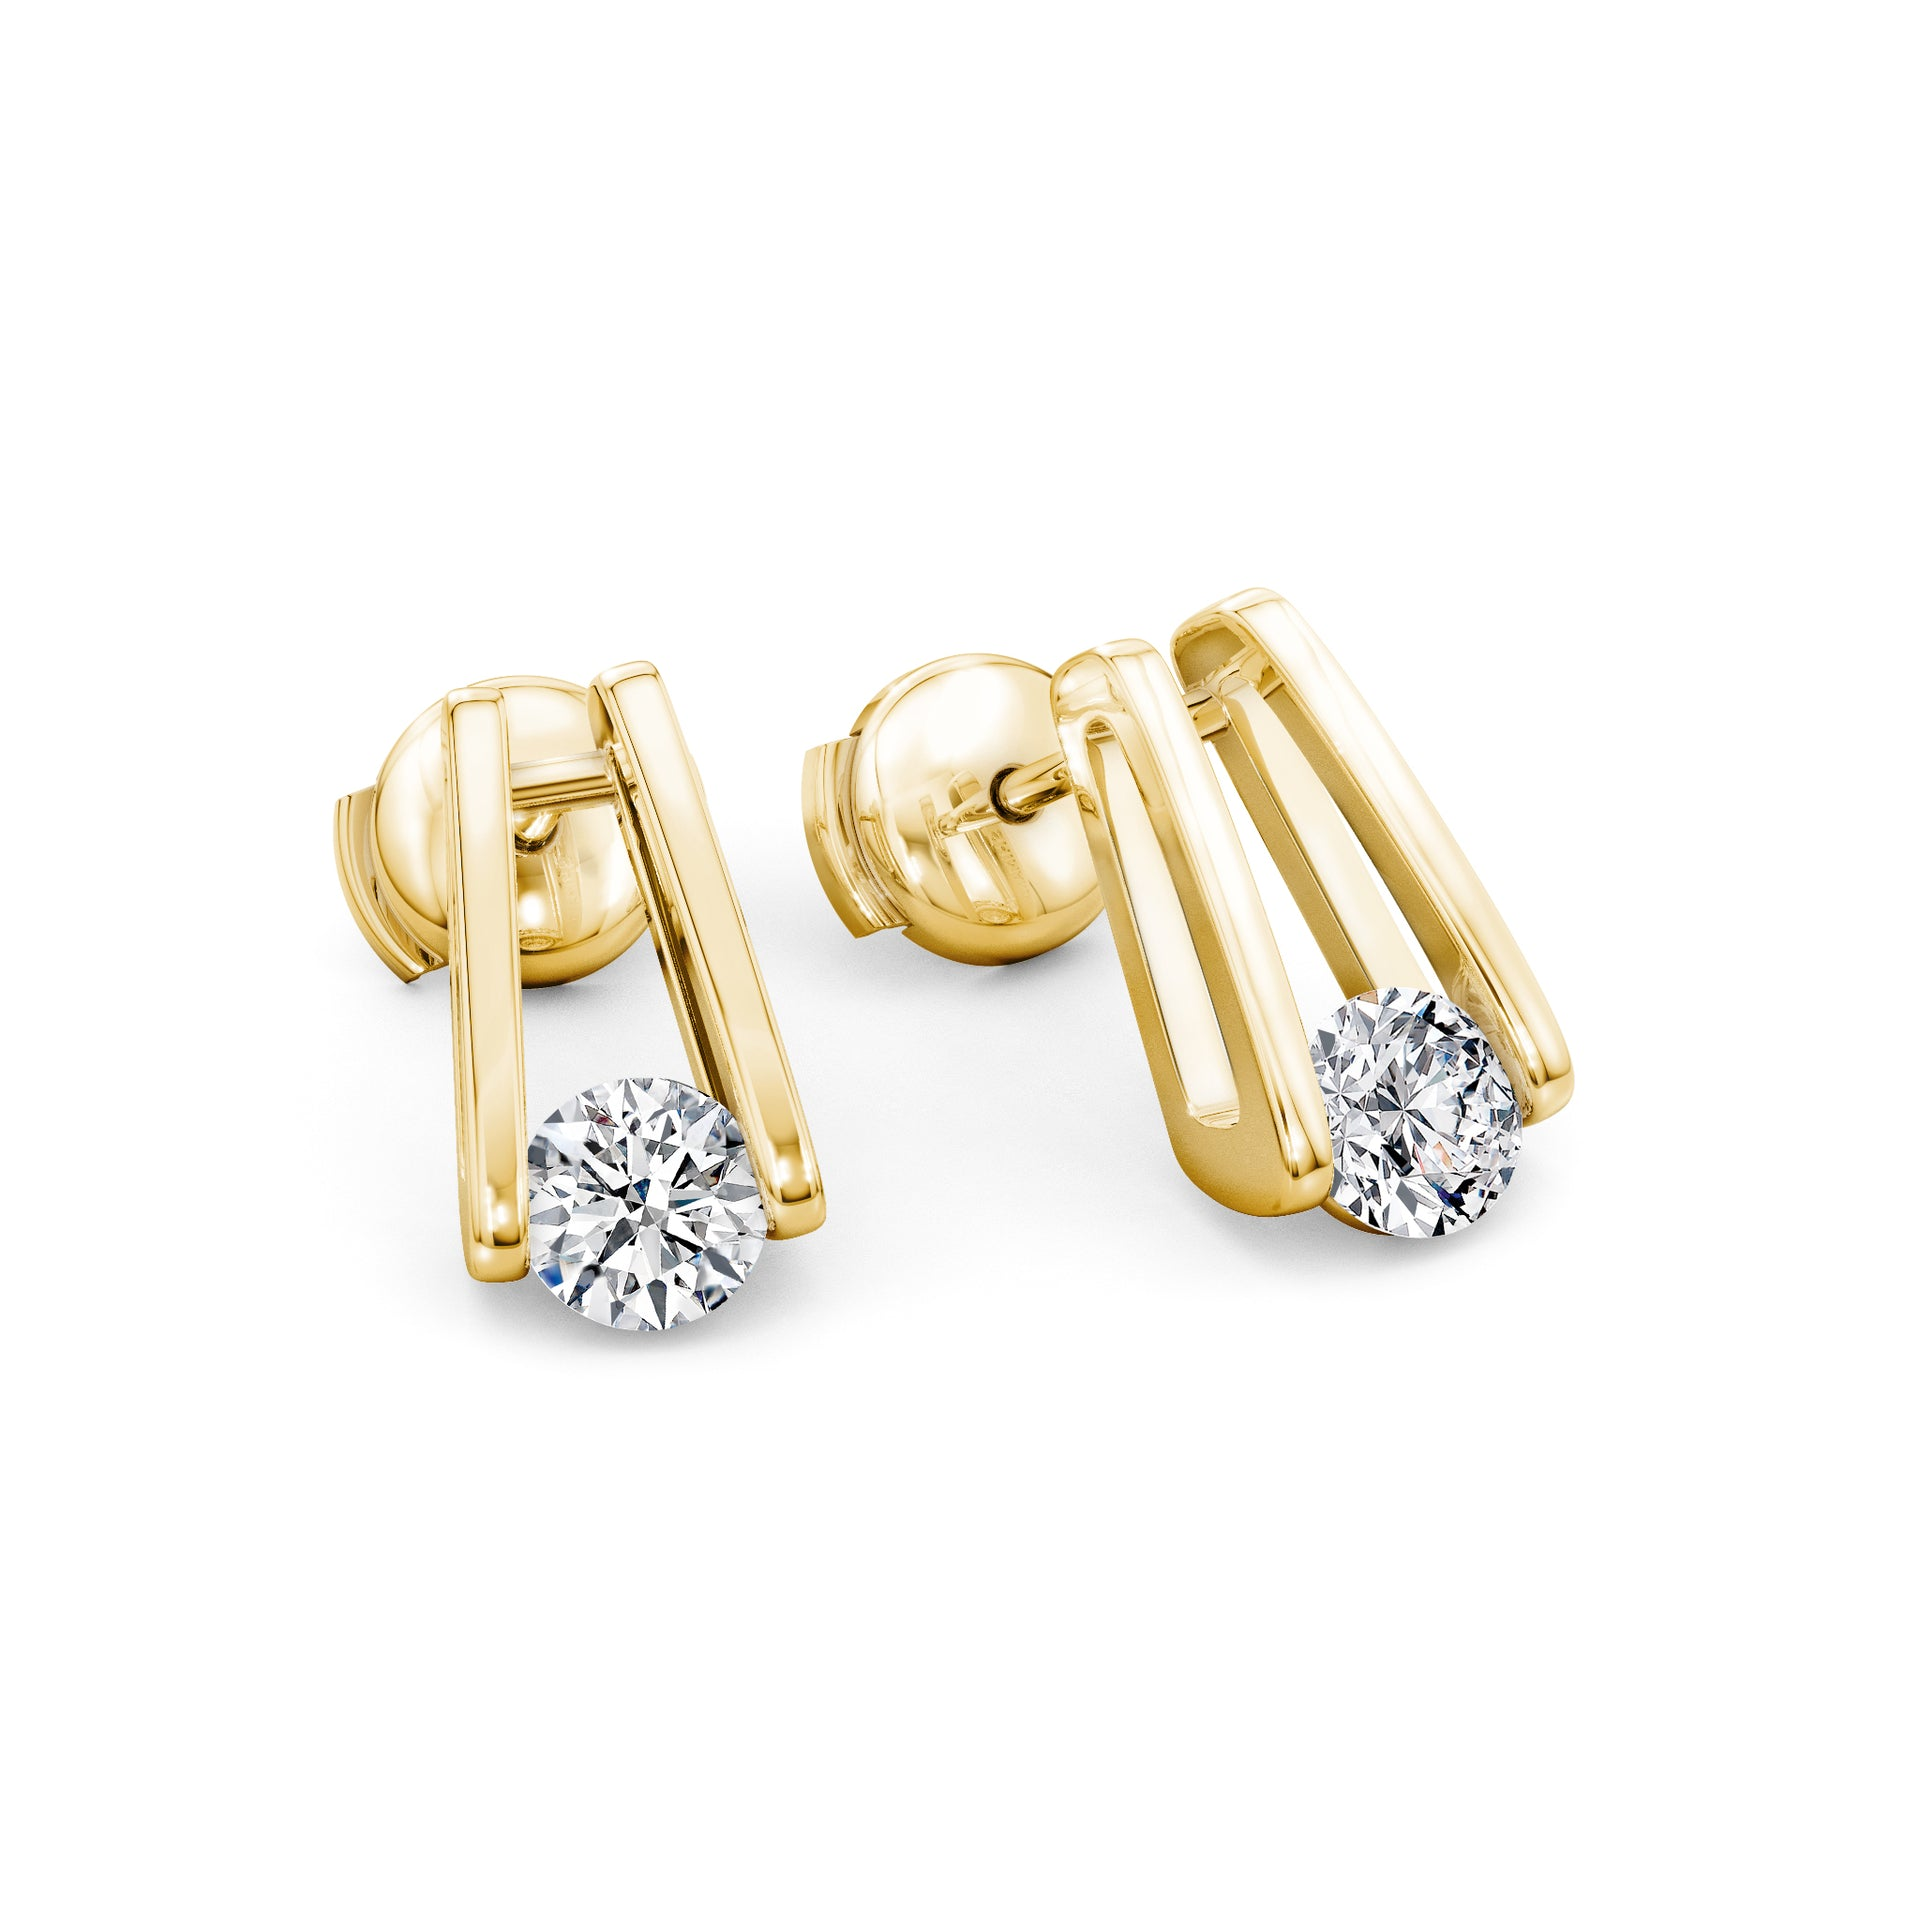 Millennium Diamond Stud Earrings in 18K Yellow Gold D View